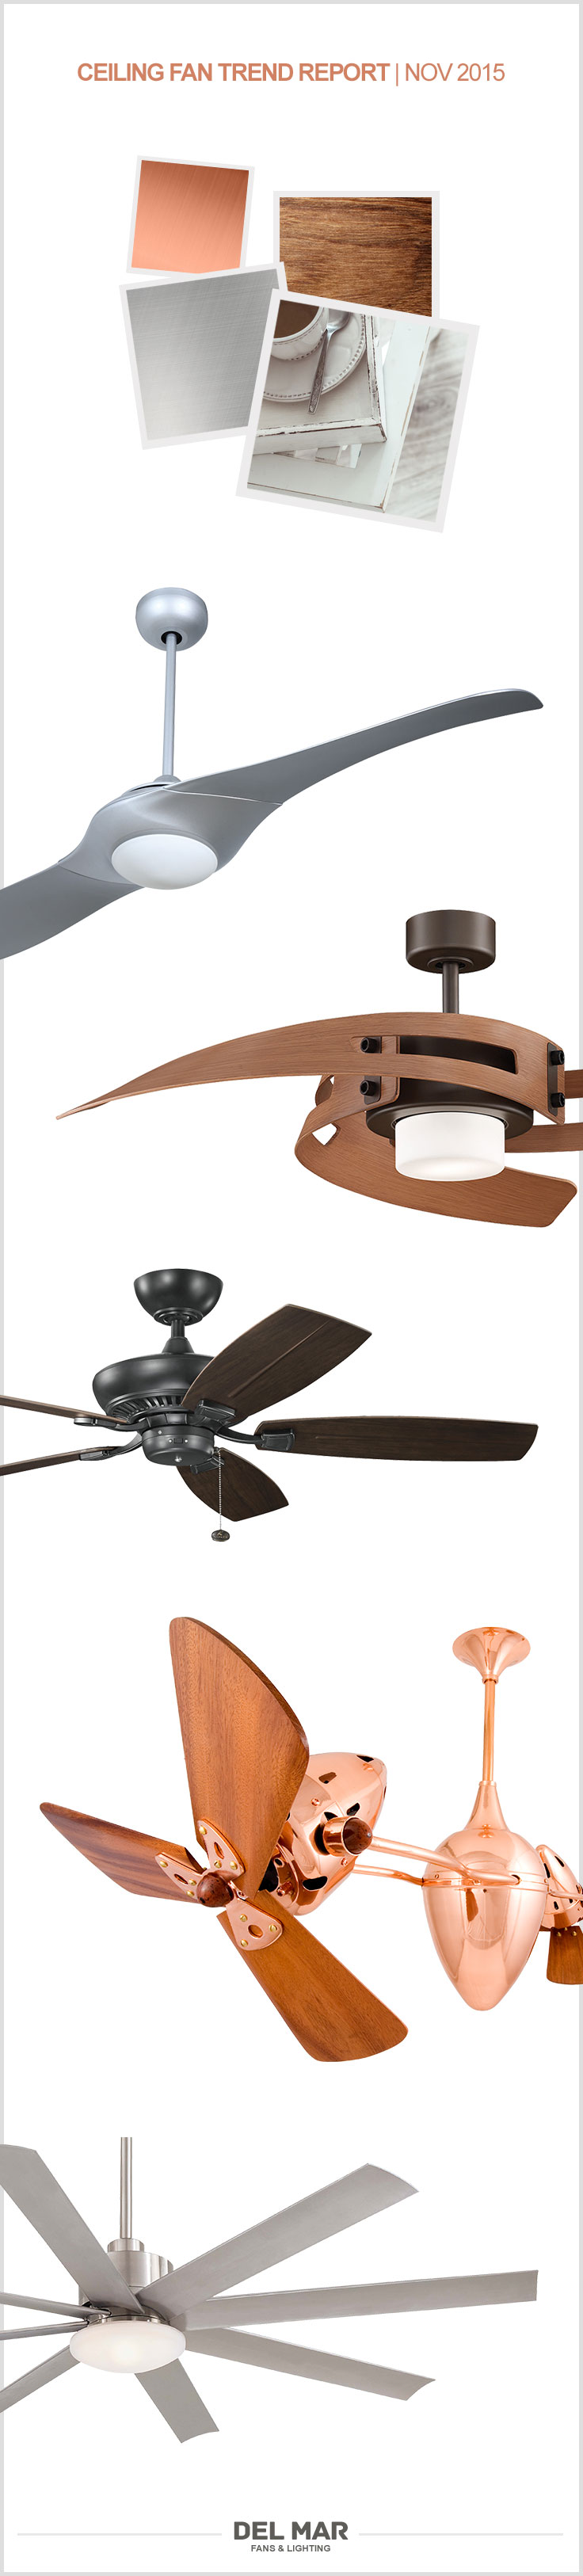 November Ceiling Fan Trend Report Unique Fans Del Mar Fans